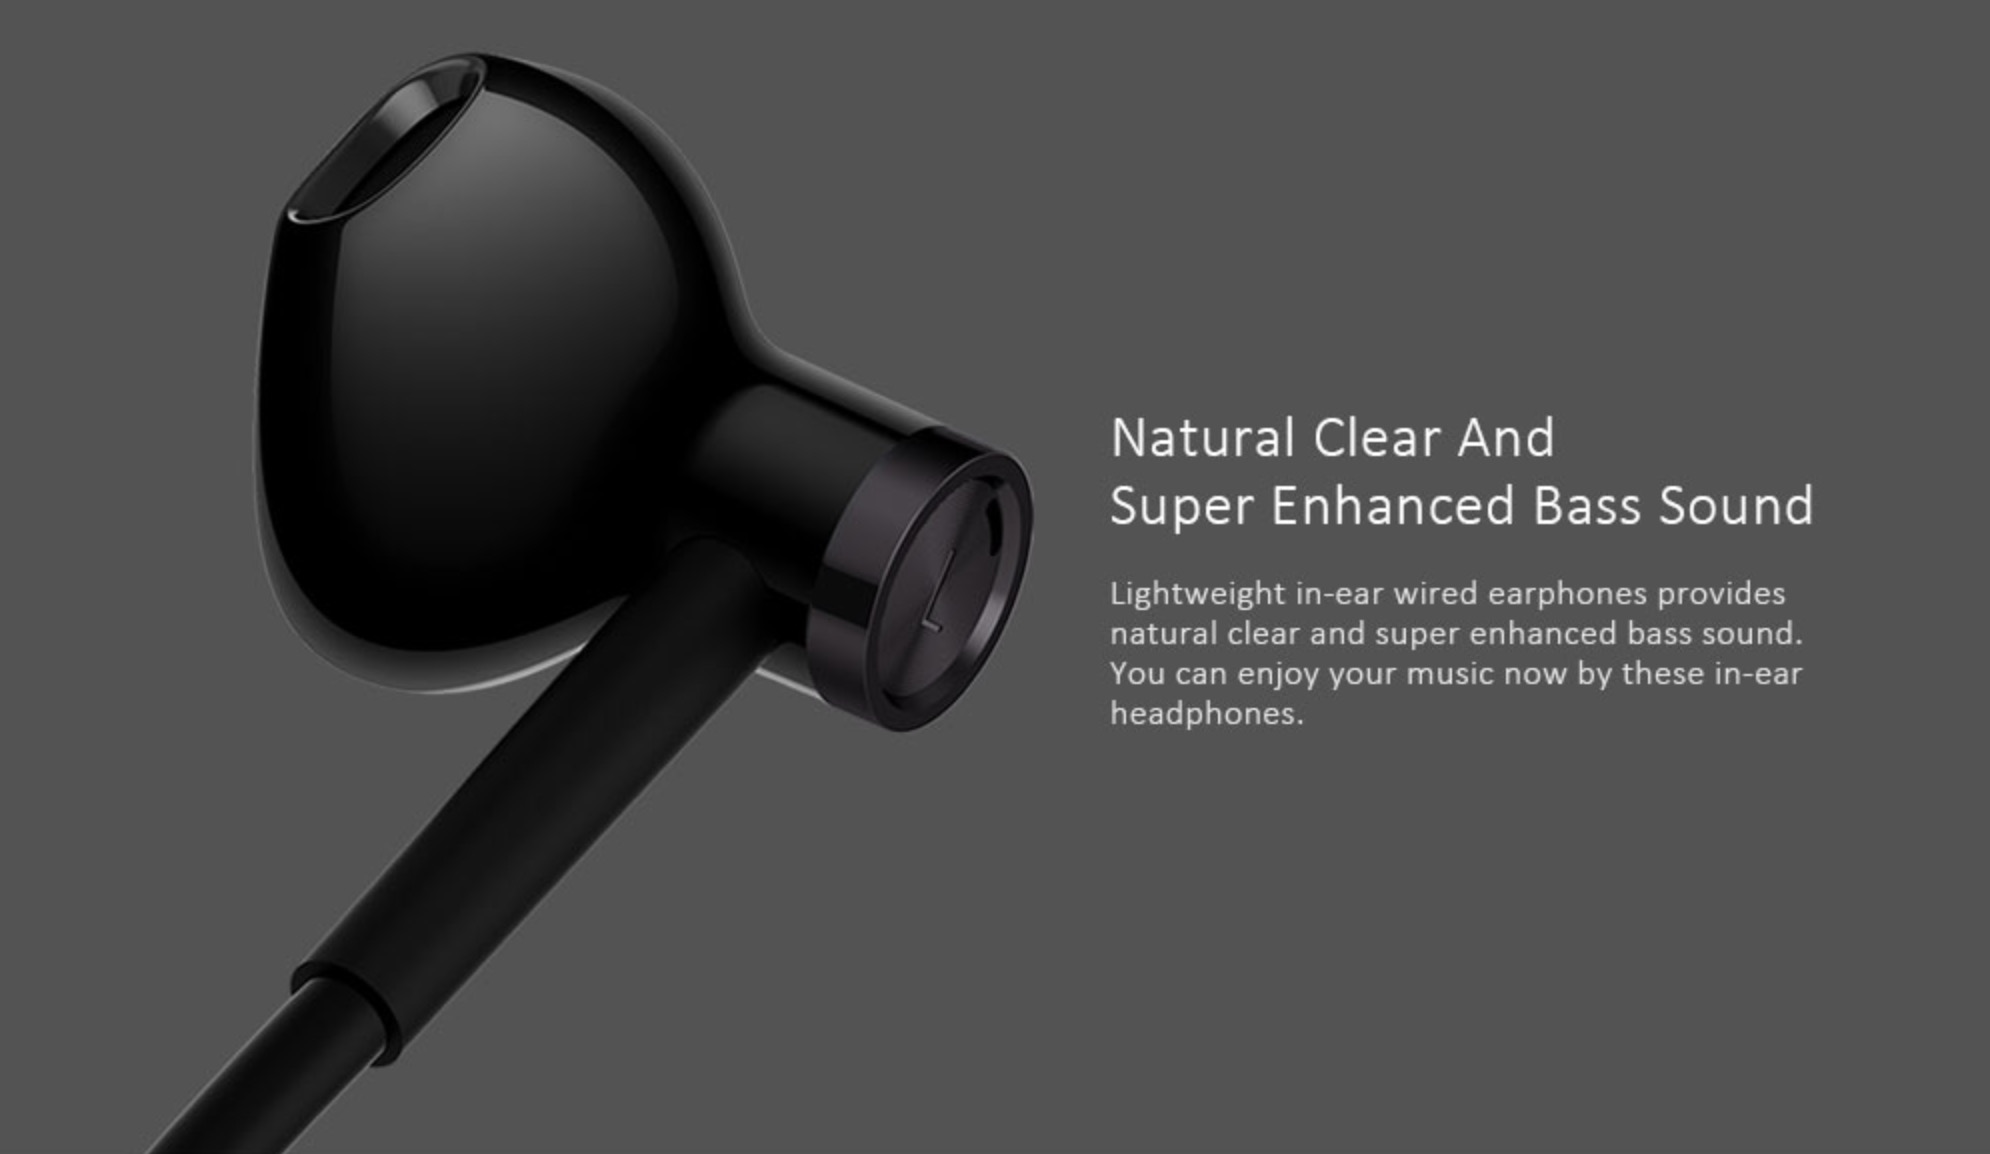 Natural Clear and Super Enhanced Bass Sound Lightweight in-ear wired earphones provide natural clear and super enhanced bass sound. You can enjoy your music now by these in-ear headphones.